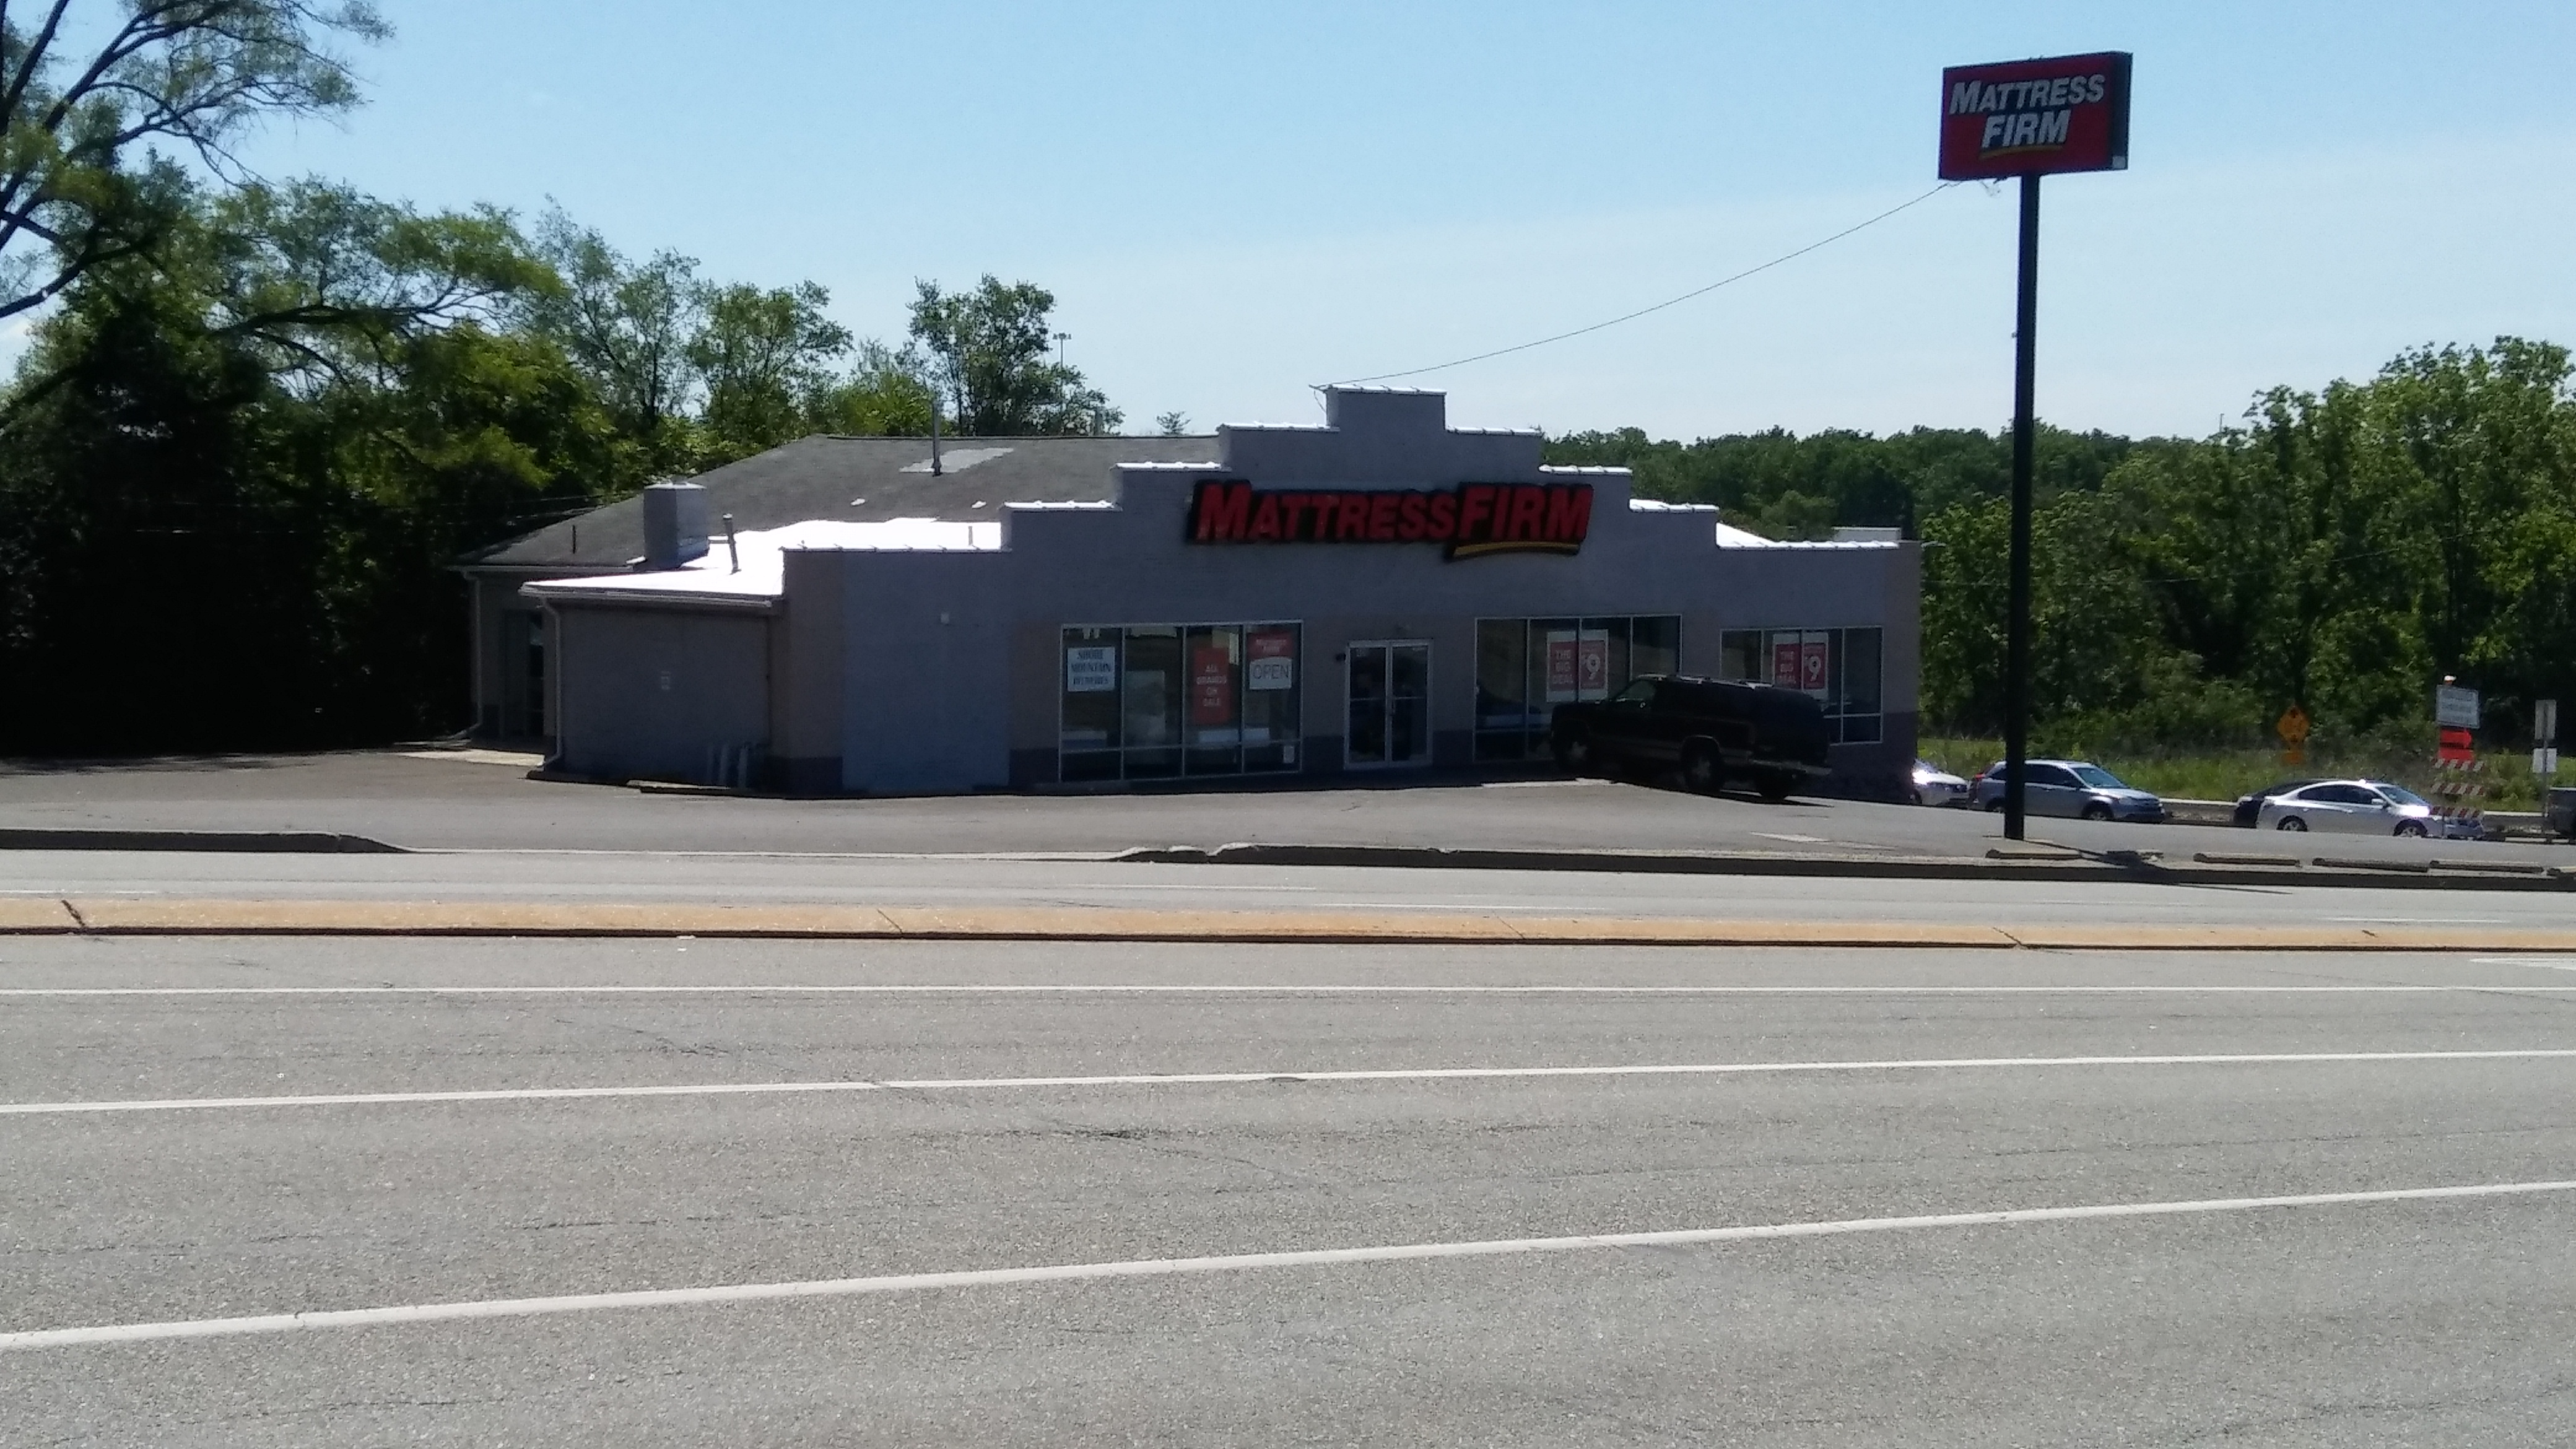 Mattress Firm Plymouth Meeting image 2